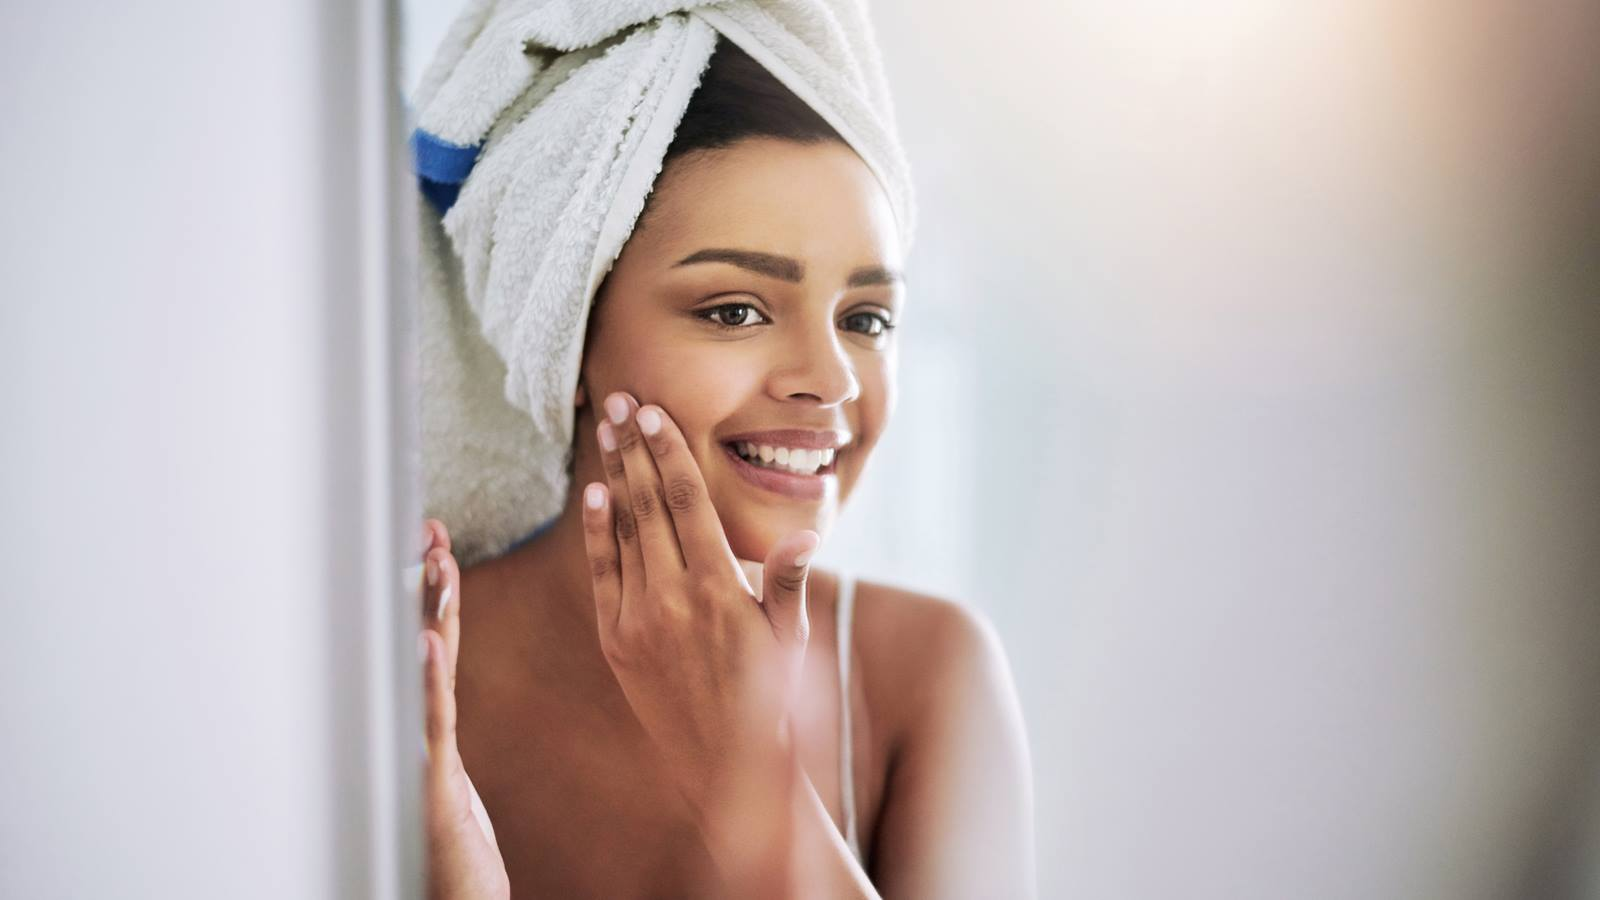 How Can a Chemical Peel Help My Skin?